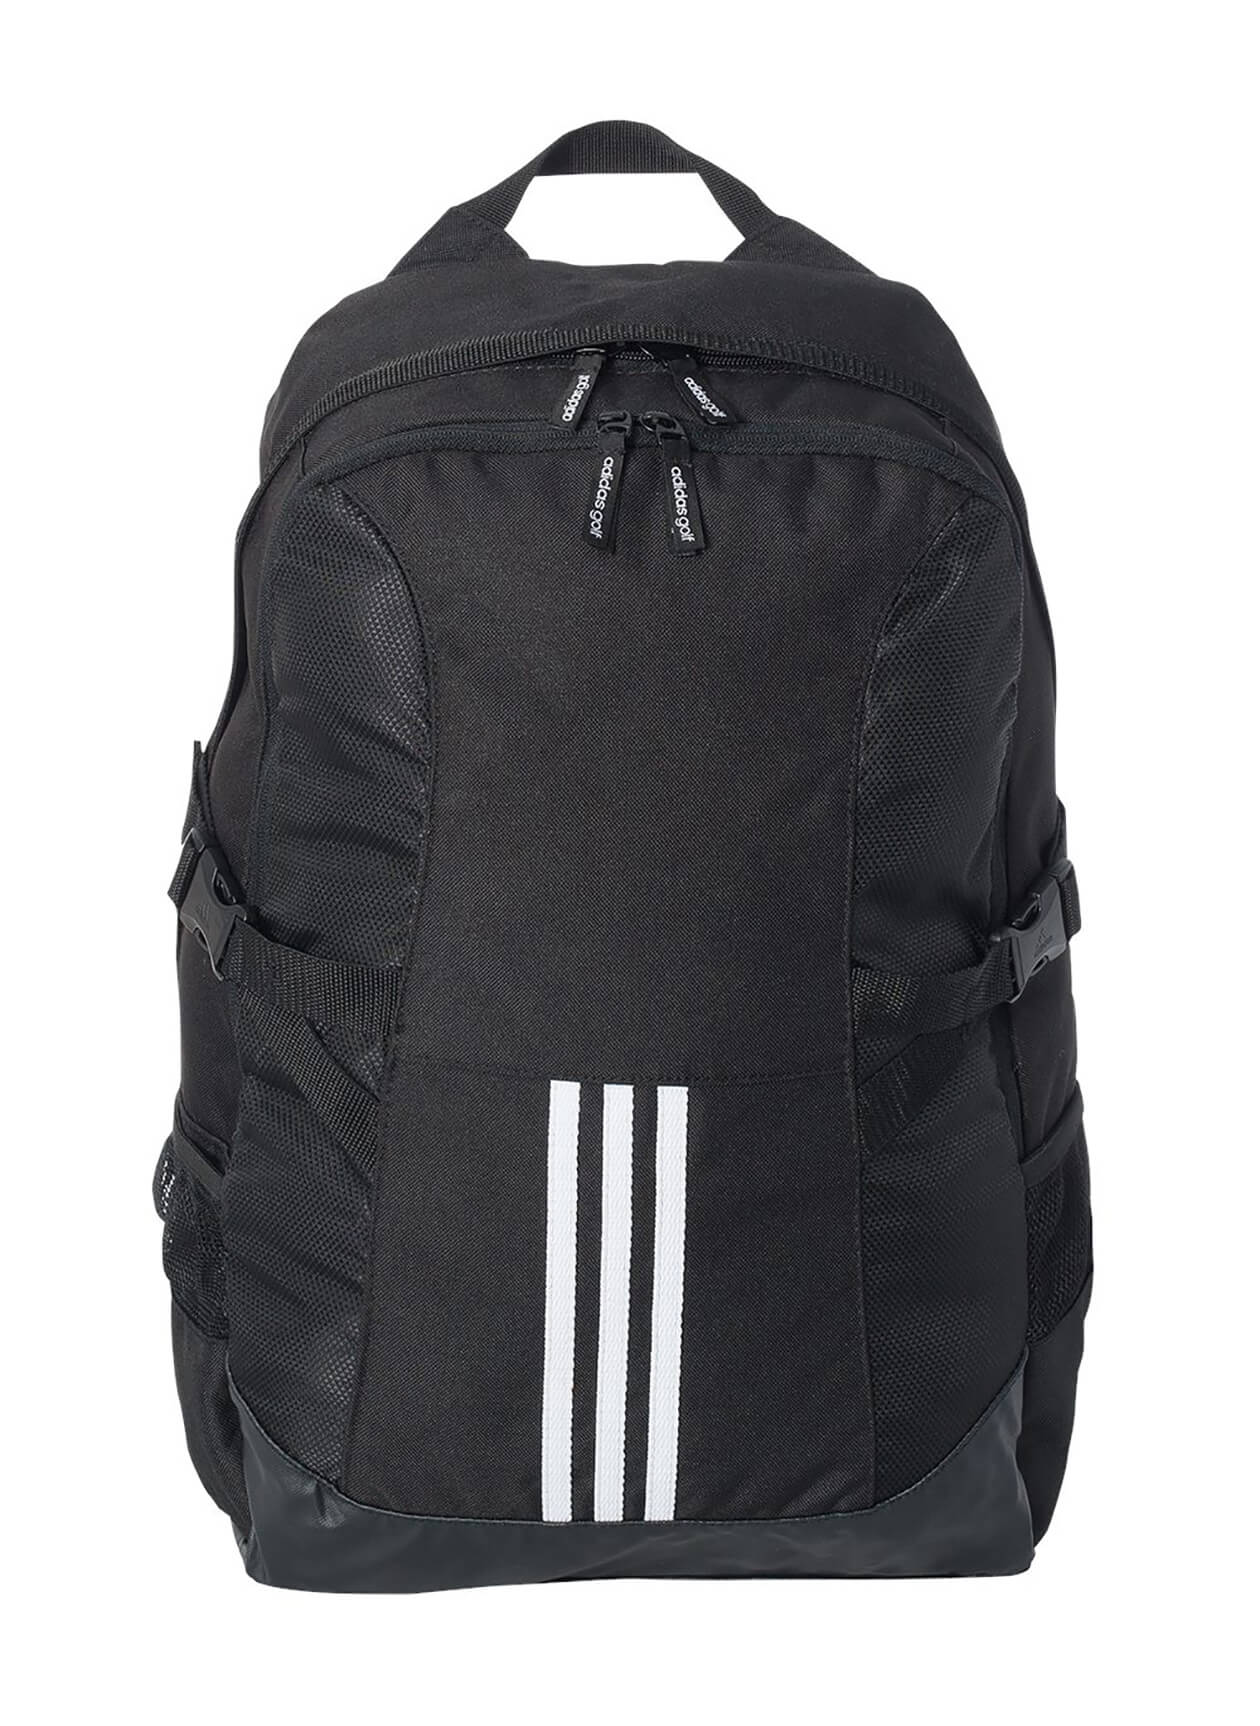 Adidas 26L Backpack